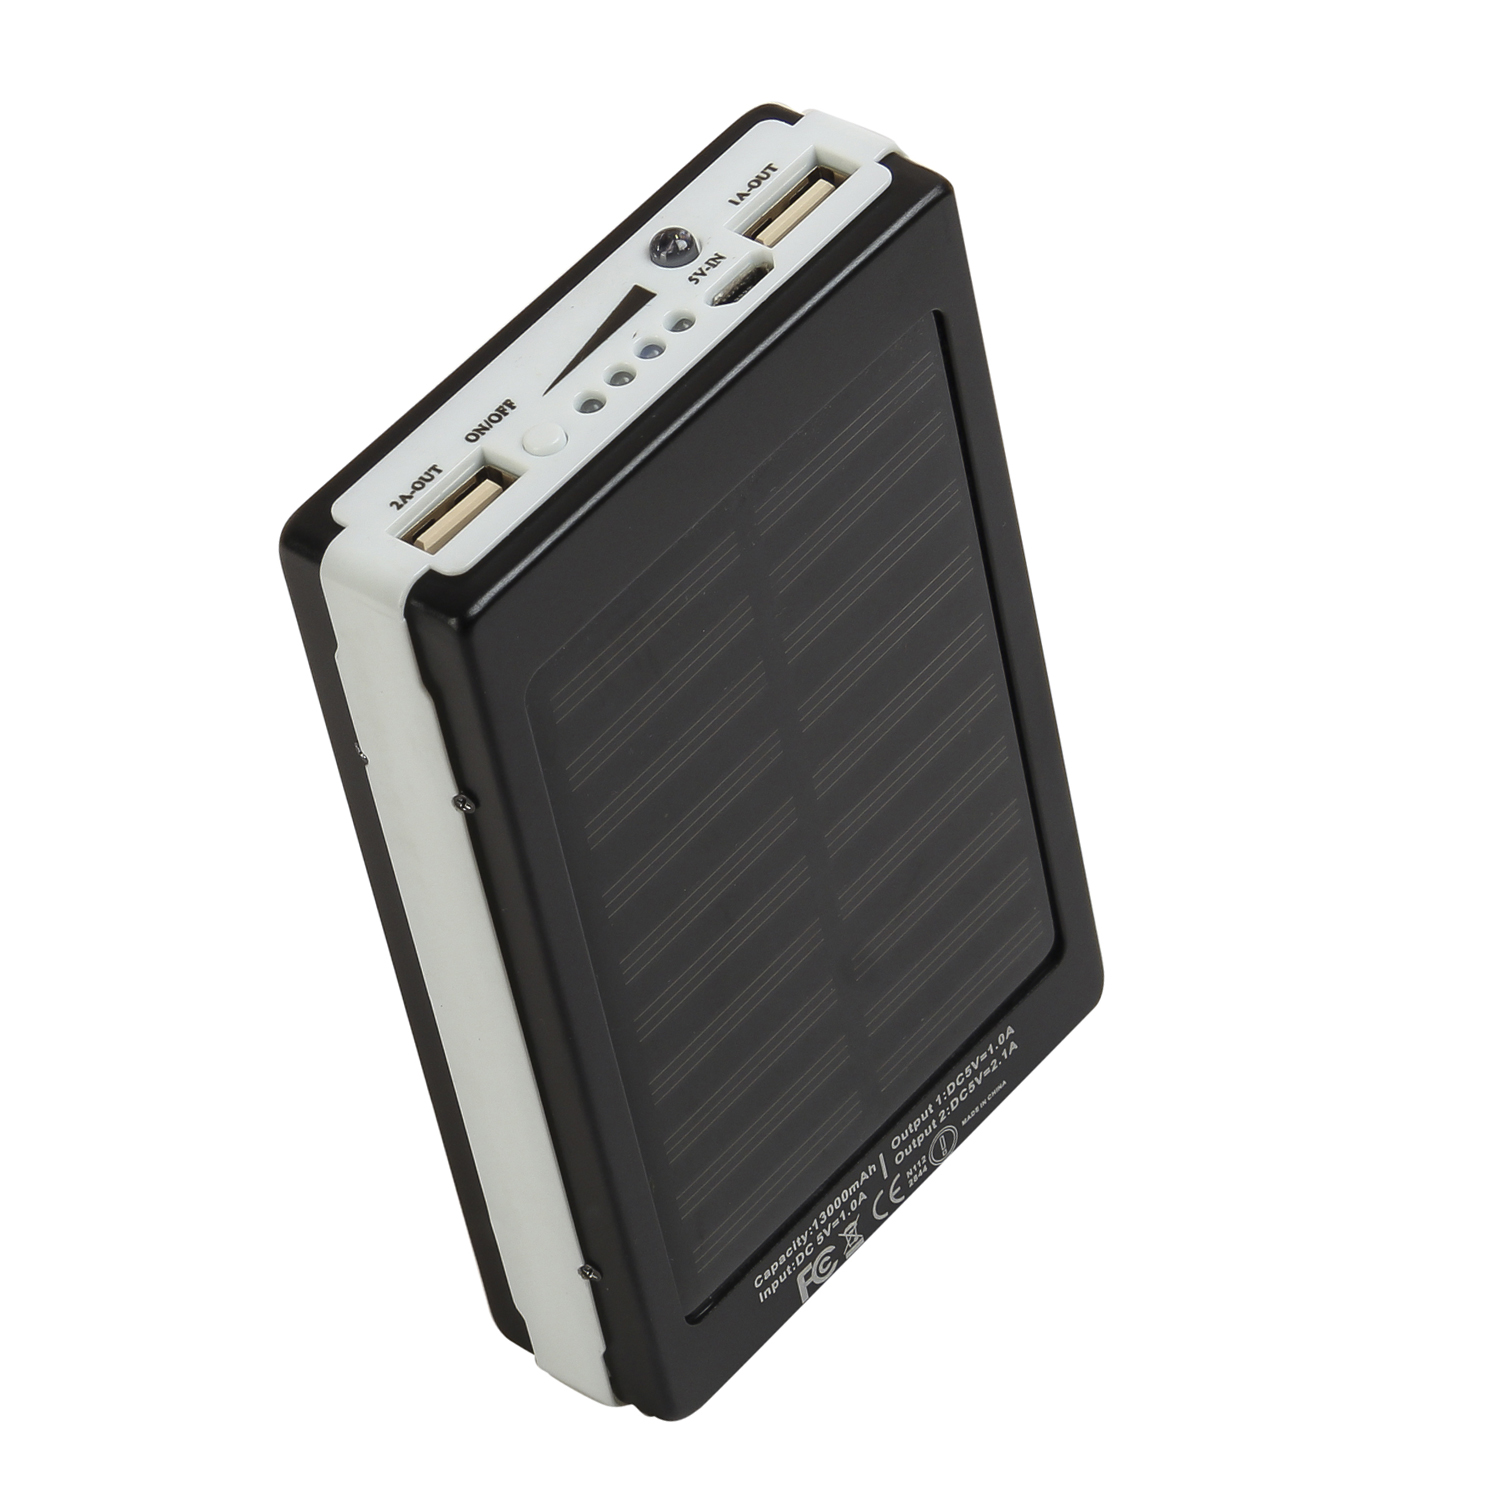 CallOne Solar LED Power Bank 13000 mAh with Dual USB Port